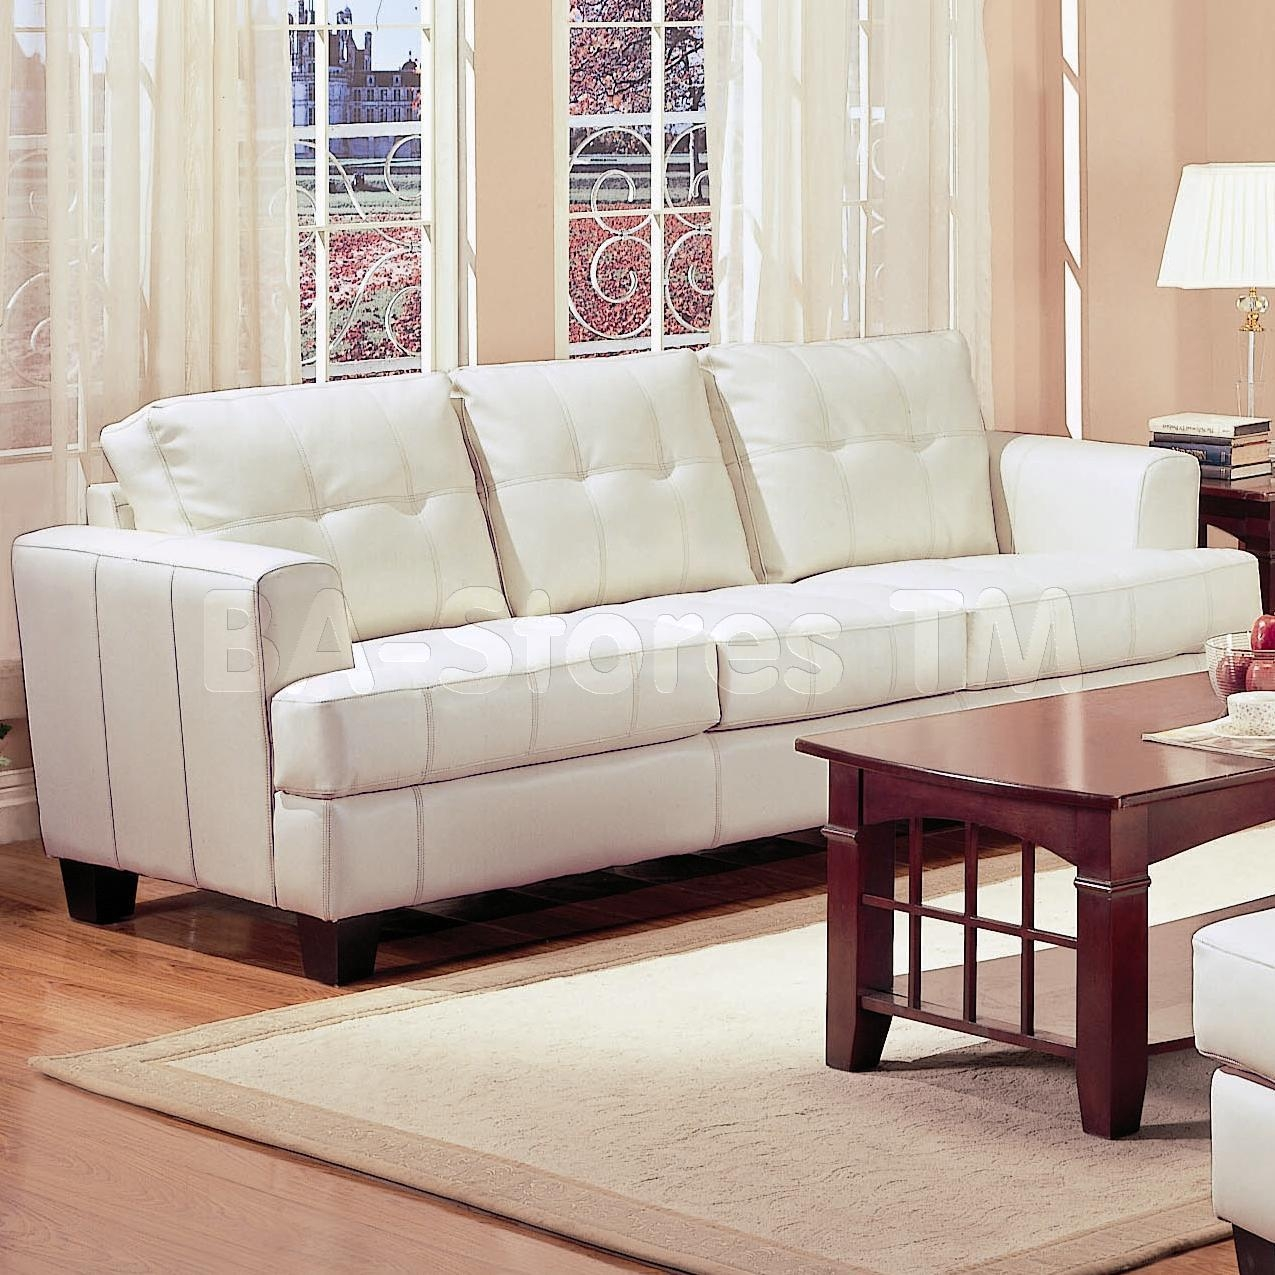 Samuel Contemporary Leather Sofa In White – Coaster Co (View 19 of 20)